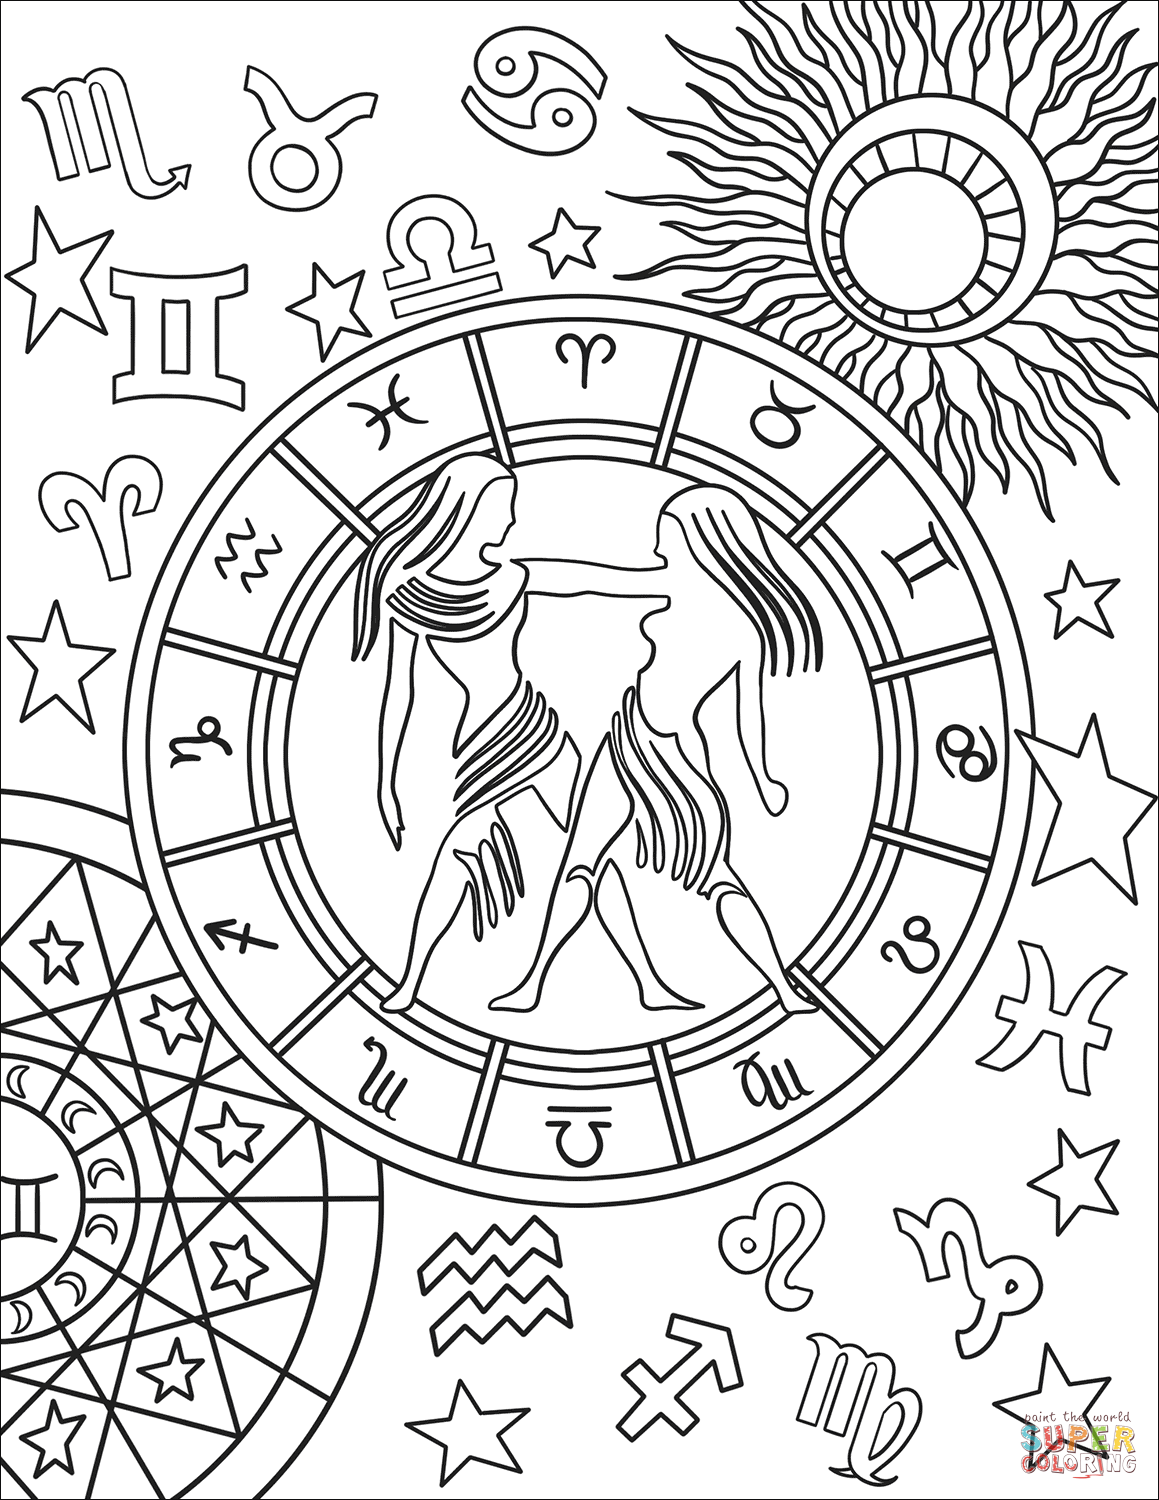 Gemini Zodiac Sign Coloring Page